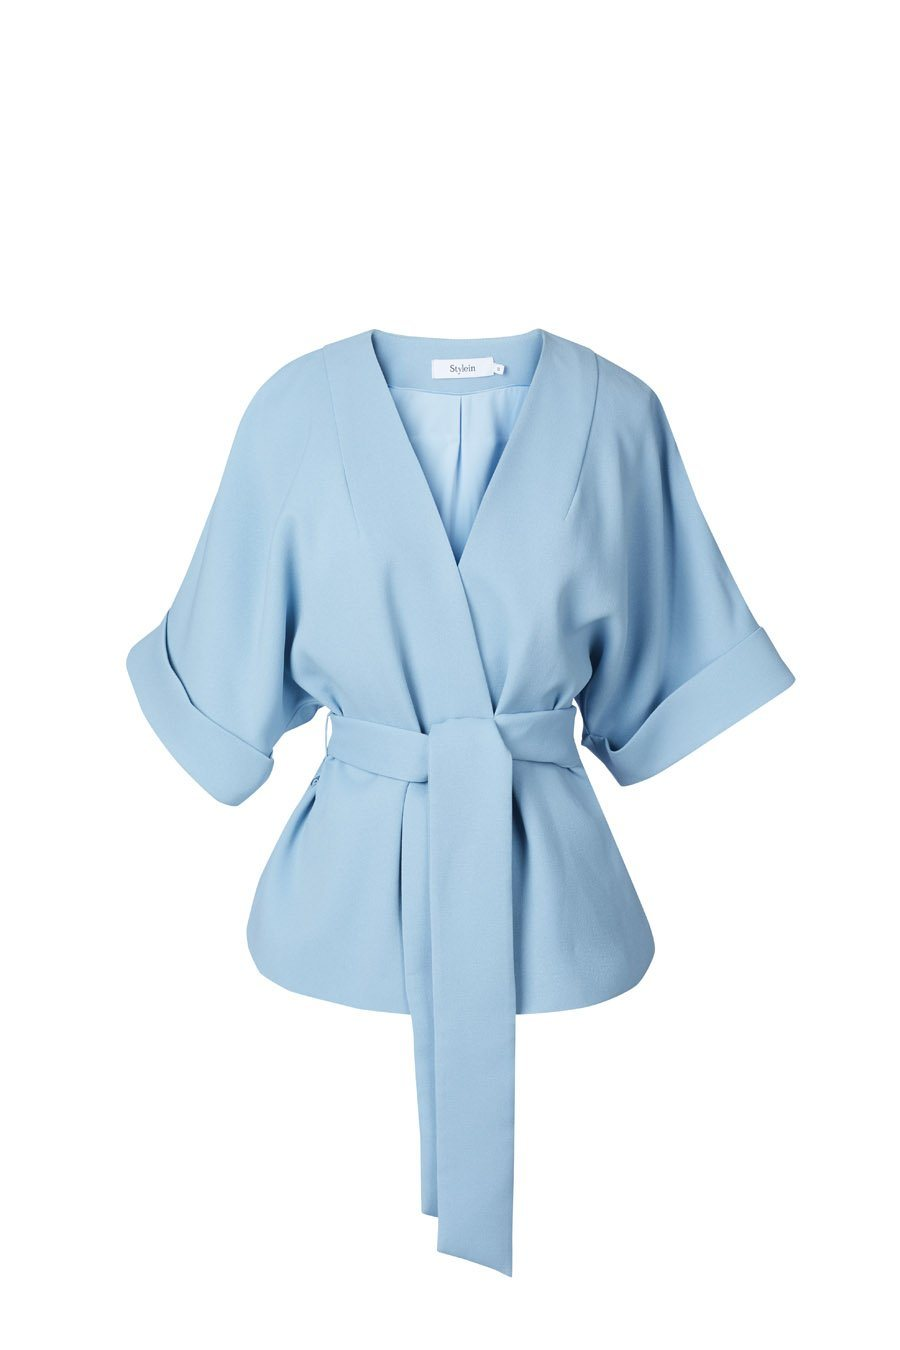 BEDOU JACKET - LIGHT BLUE Jacket Stylein